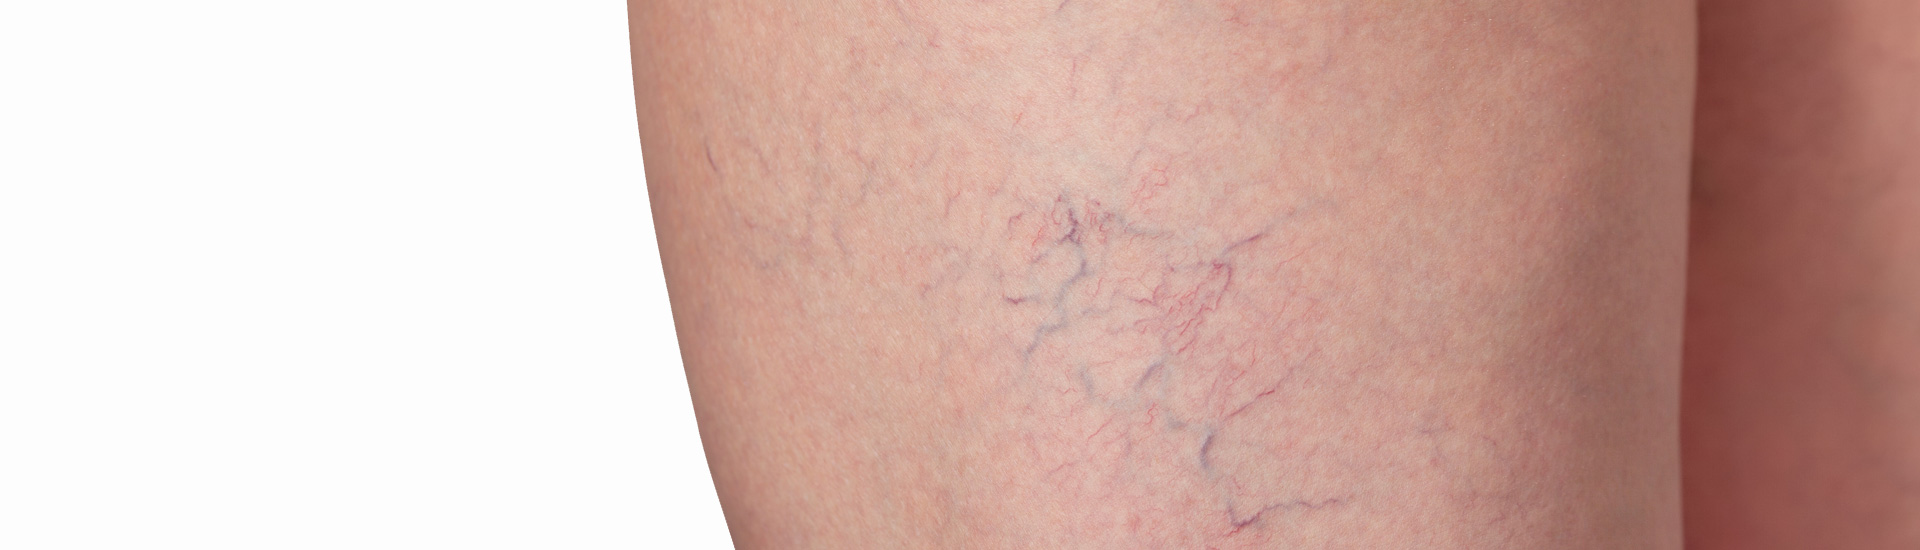 Varicose veins and capillary veins in the legs.